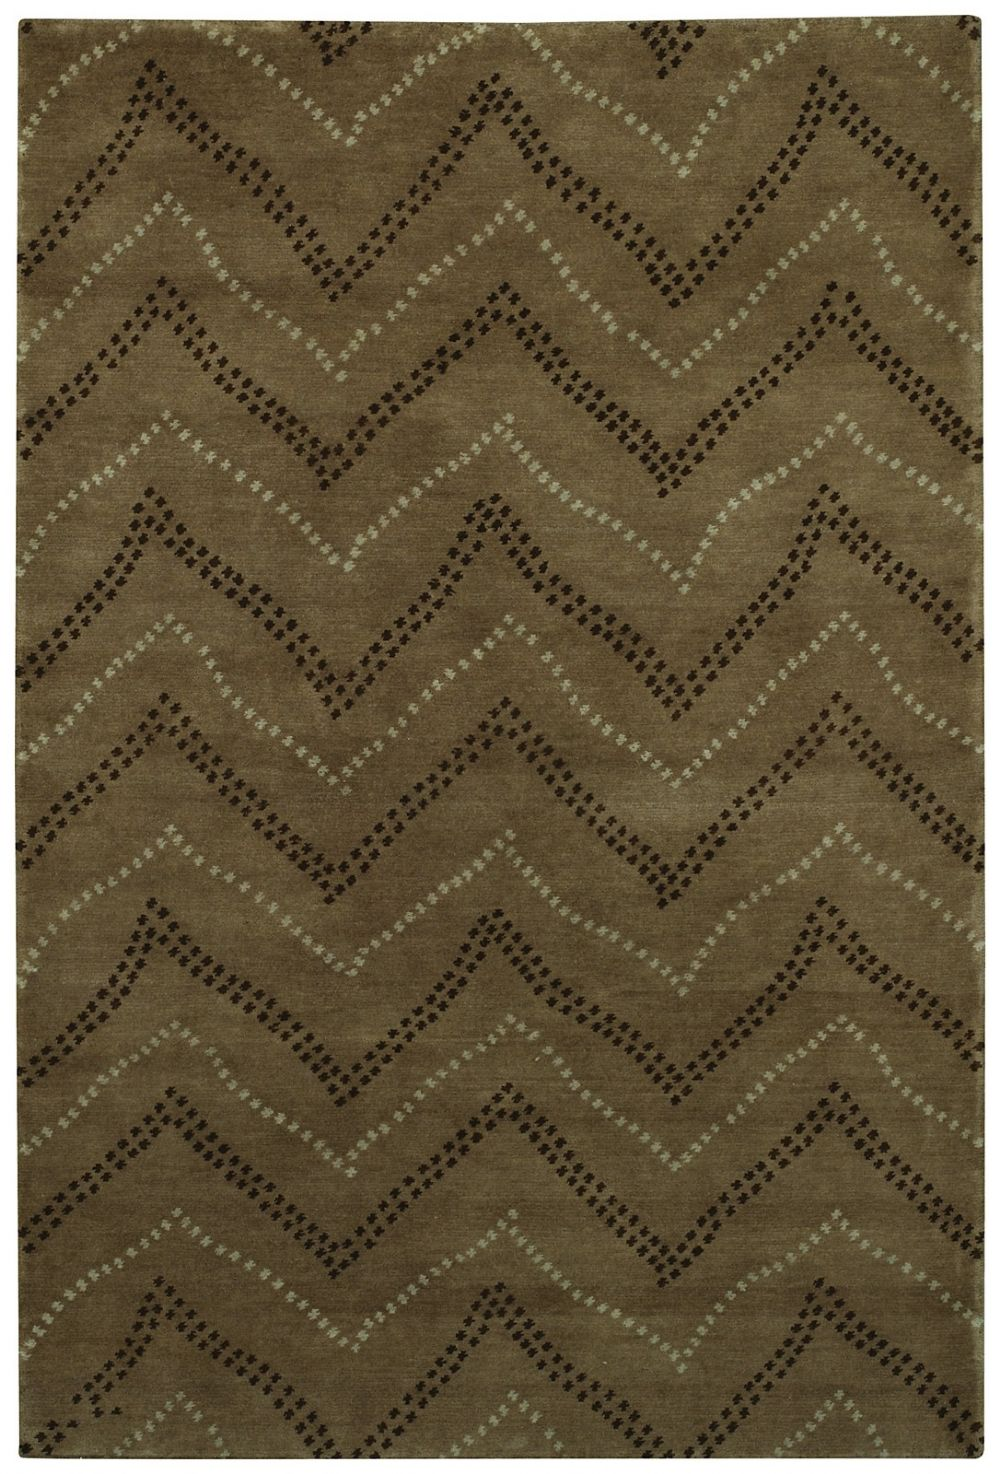 capel picturesque-whimsy contemporary area rug collection